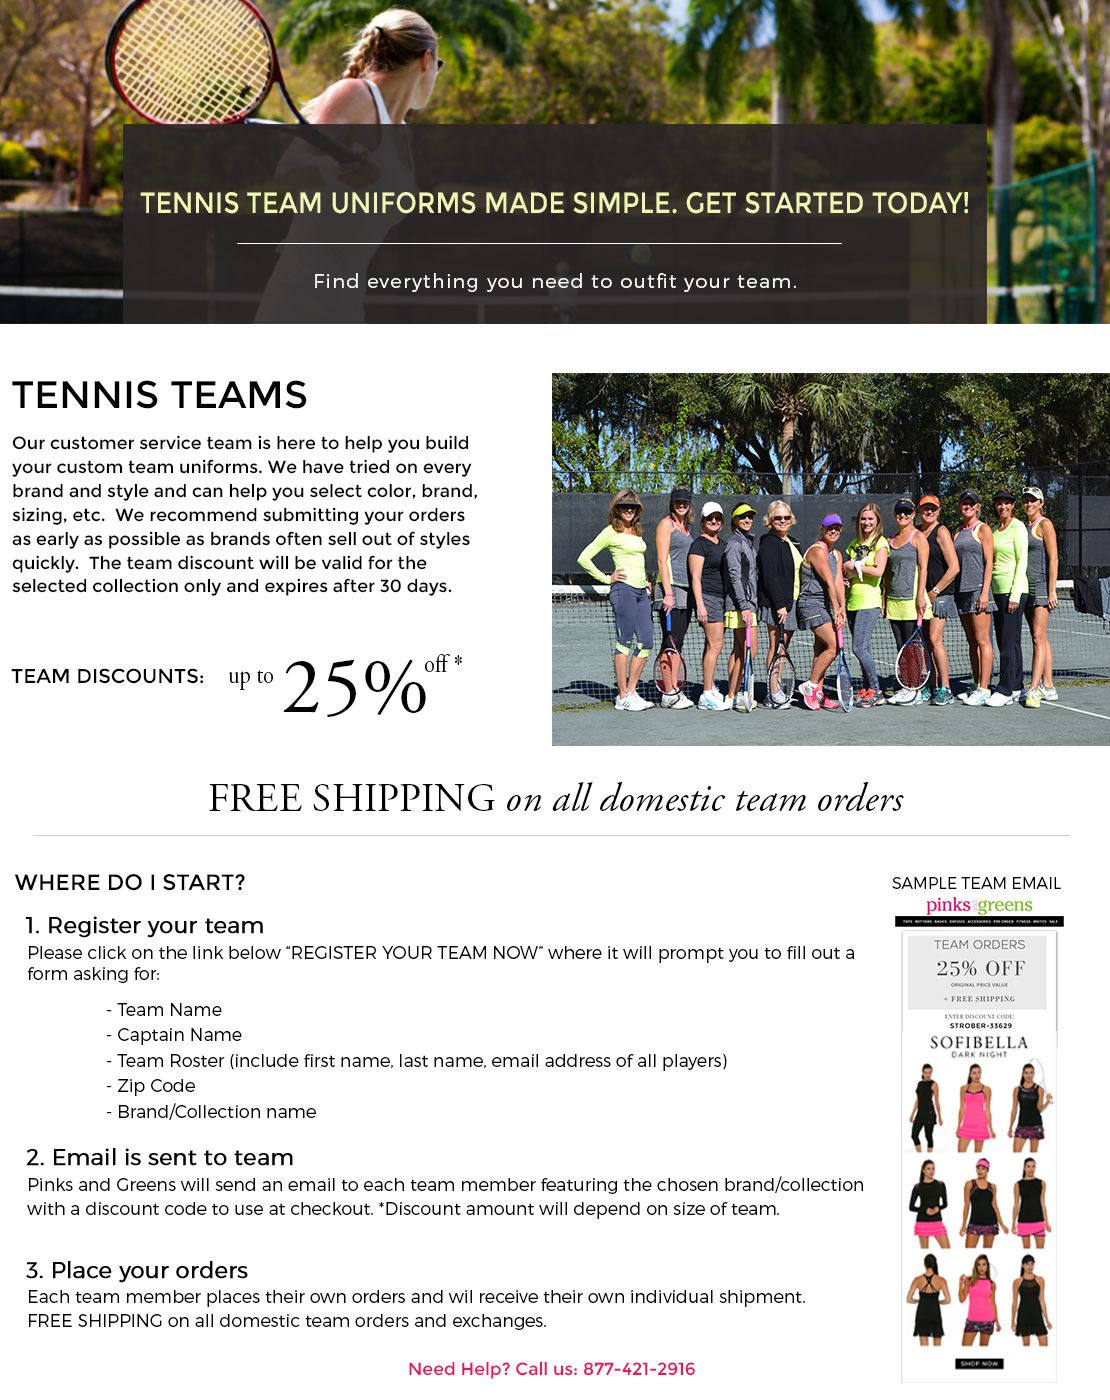 Tennis Team Discounts